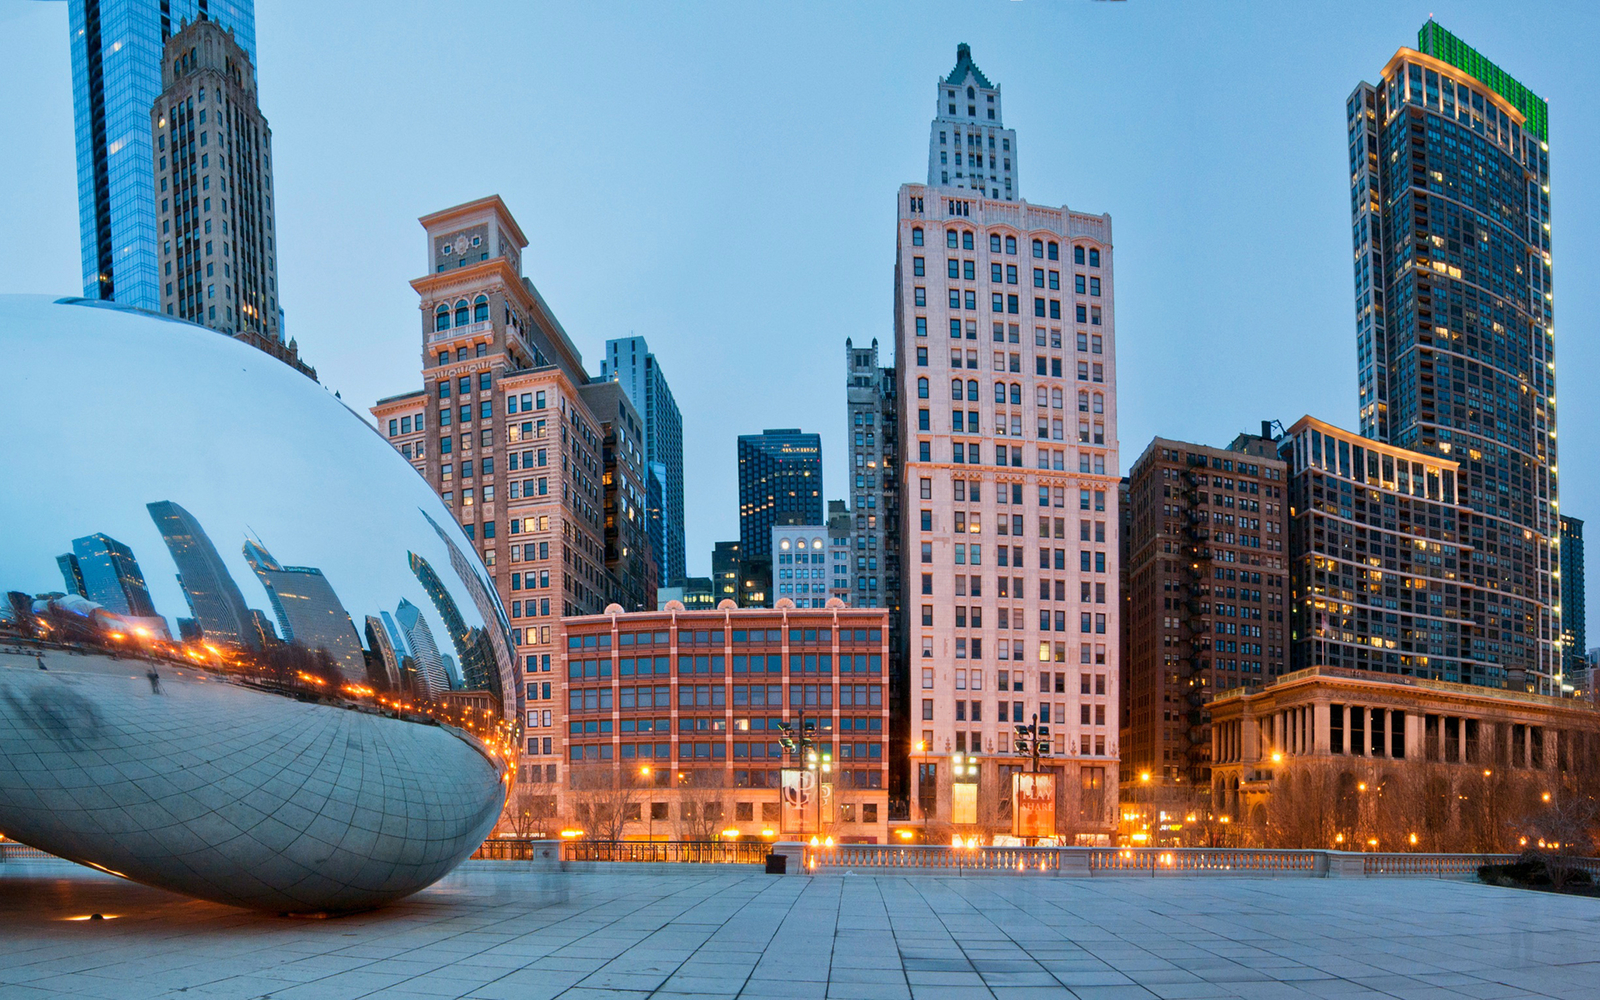 Chicago travel guide vacation trip ideas travel for Spa getaways near chicago